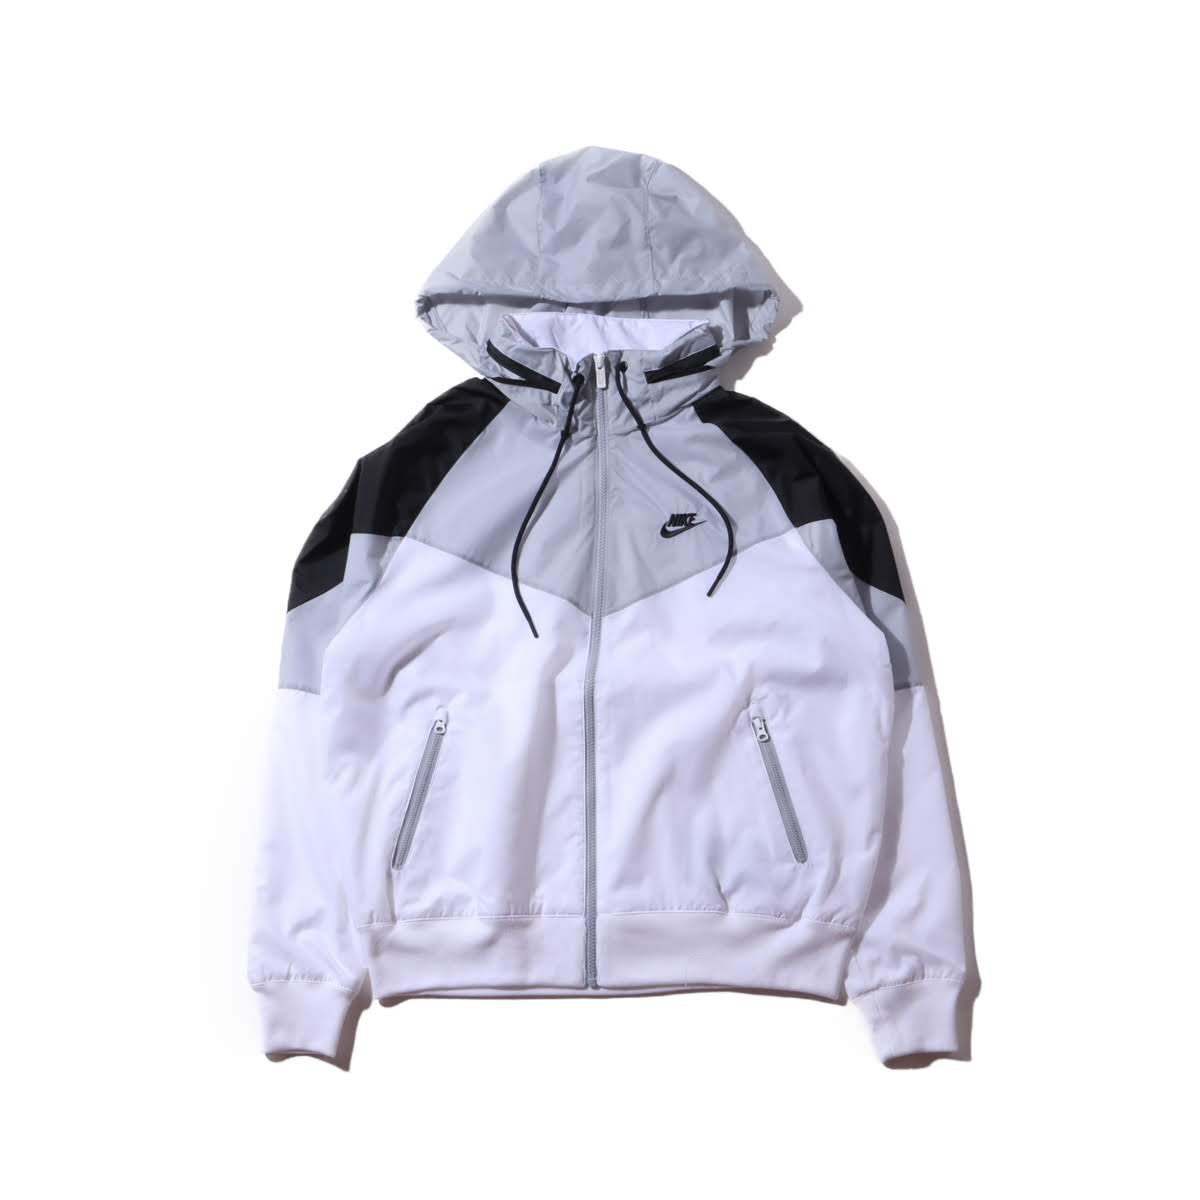 NIKE AS M NSW HE WR JKT HD +(ナイキ WR HD ジャケット +)WHITE/WOLF GREY/BLACK/BLACK【メンズ ジャケット】19SP-I